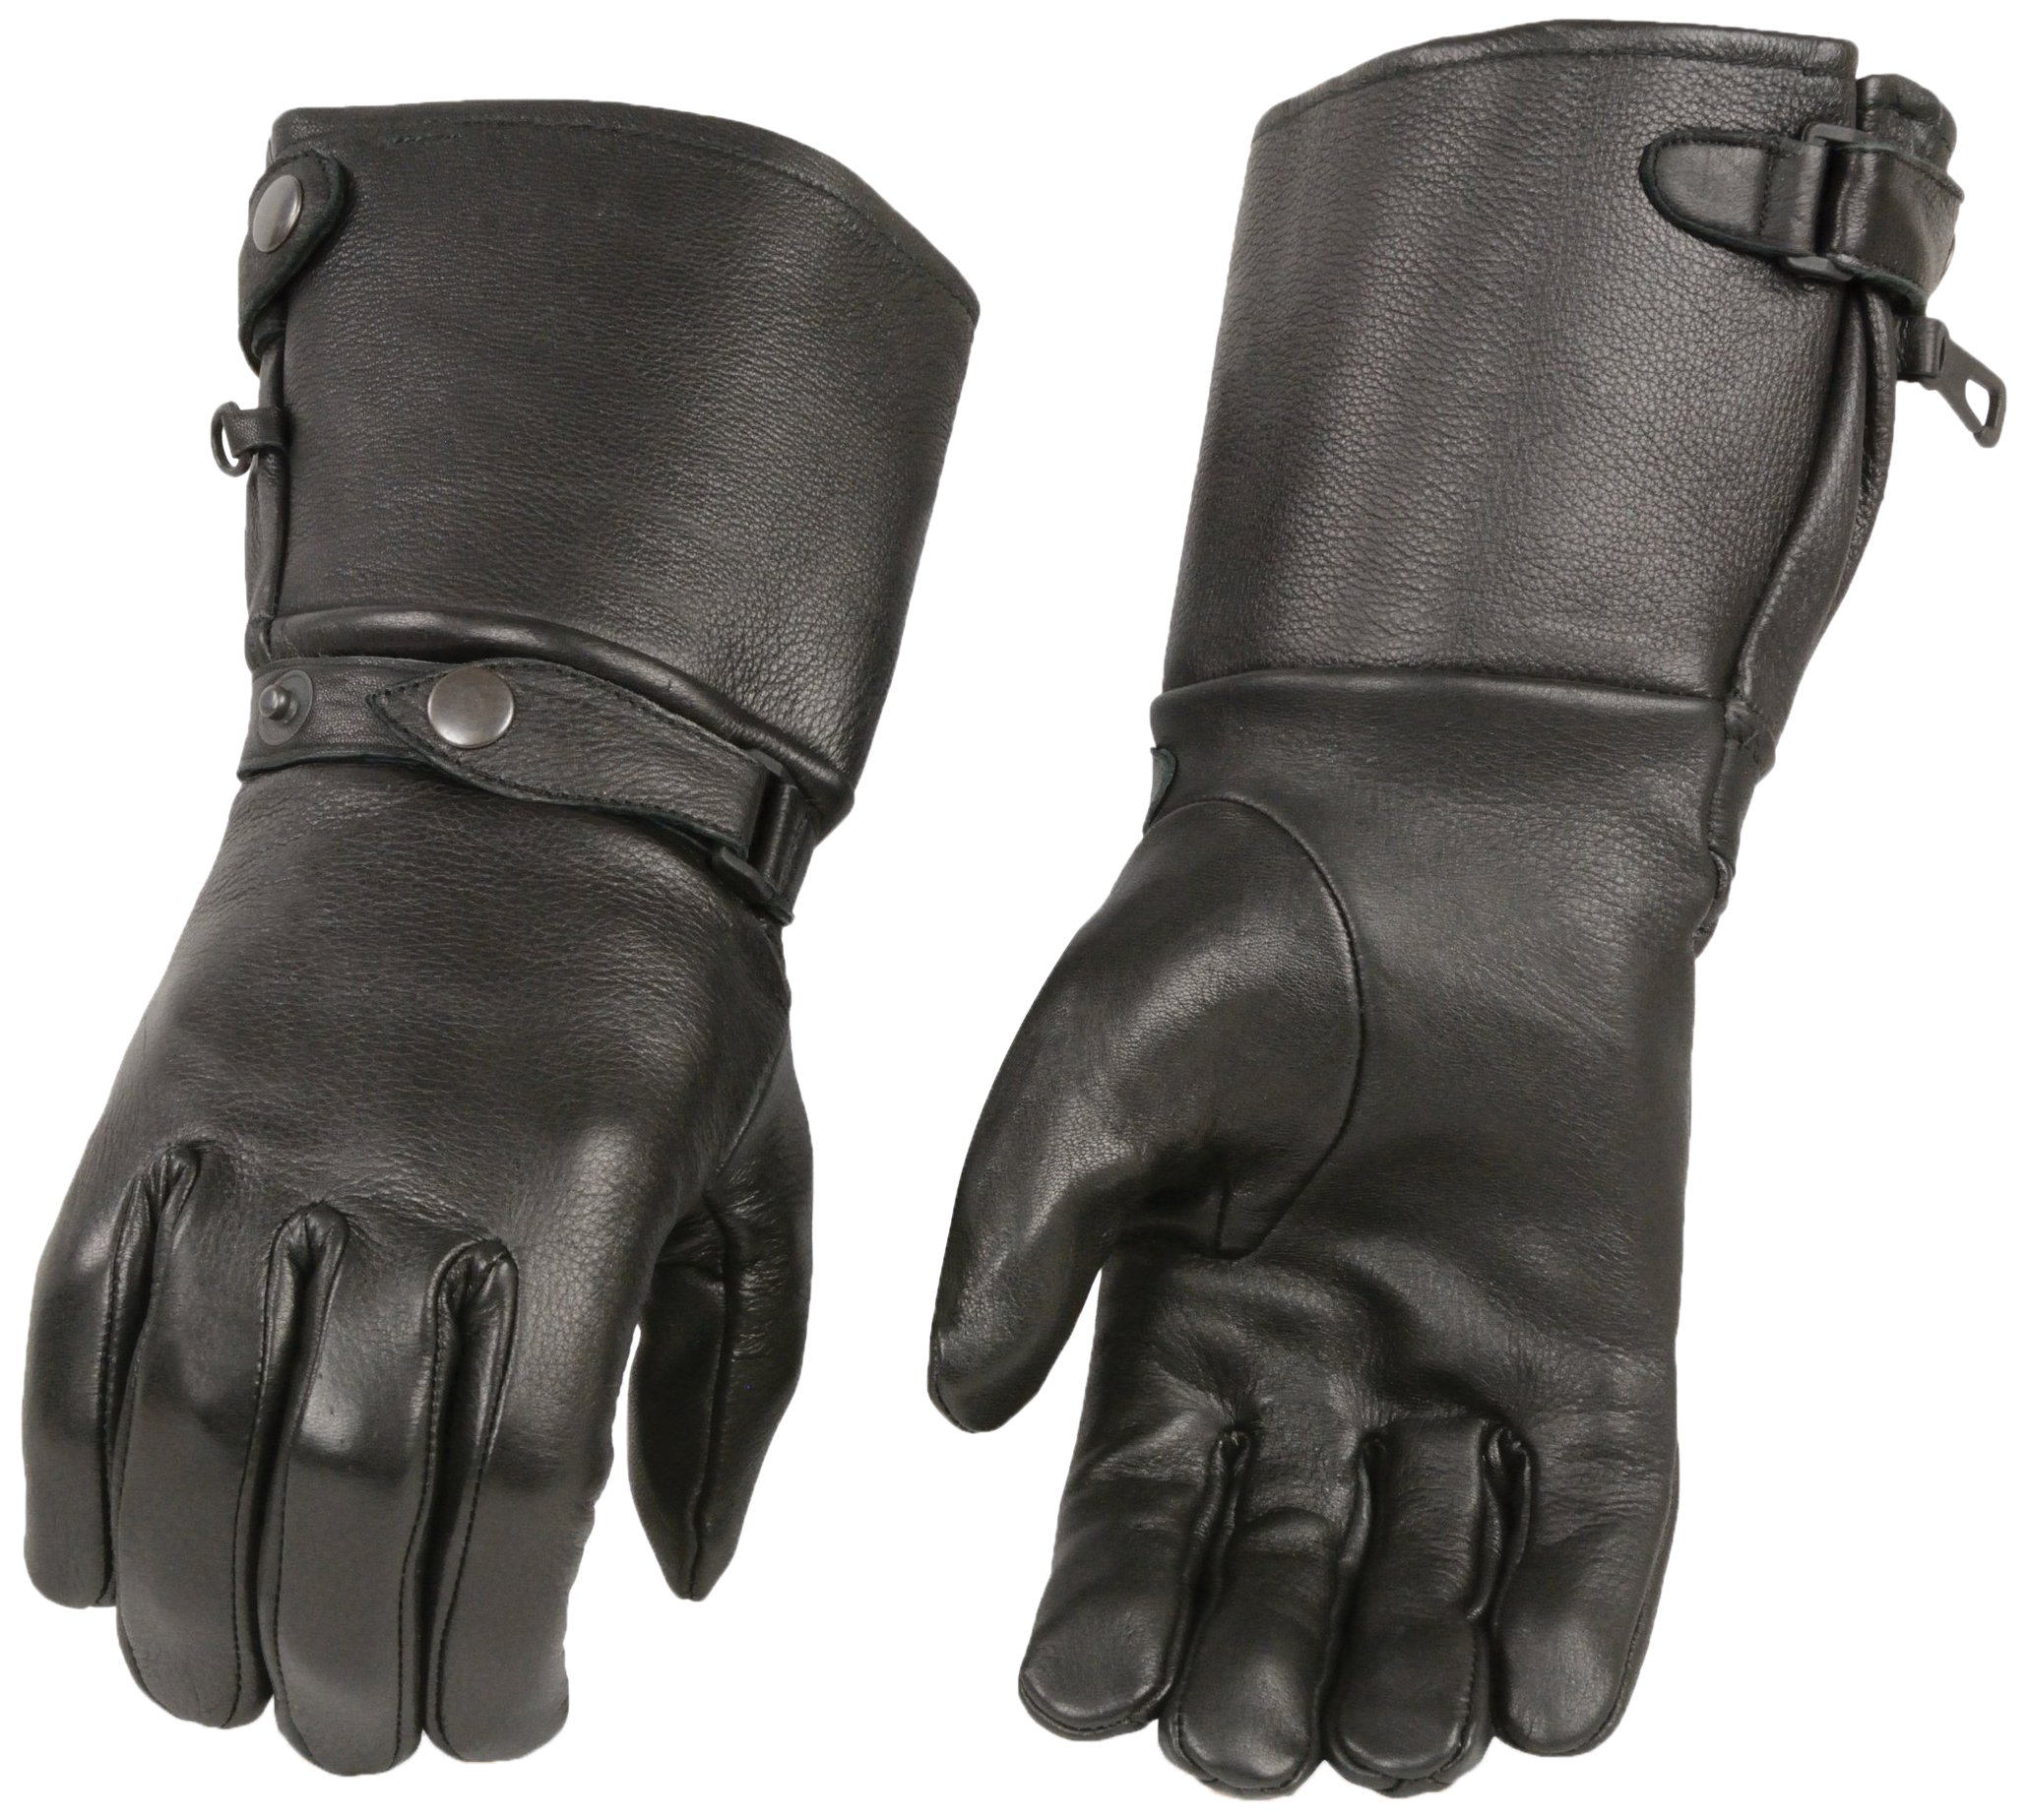 Shaf International Men's Long Cuff Deer Skin Gloves (Black, X-Large)